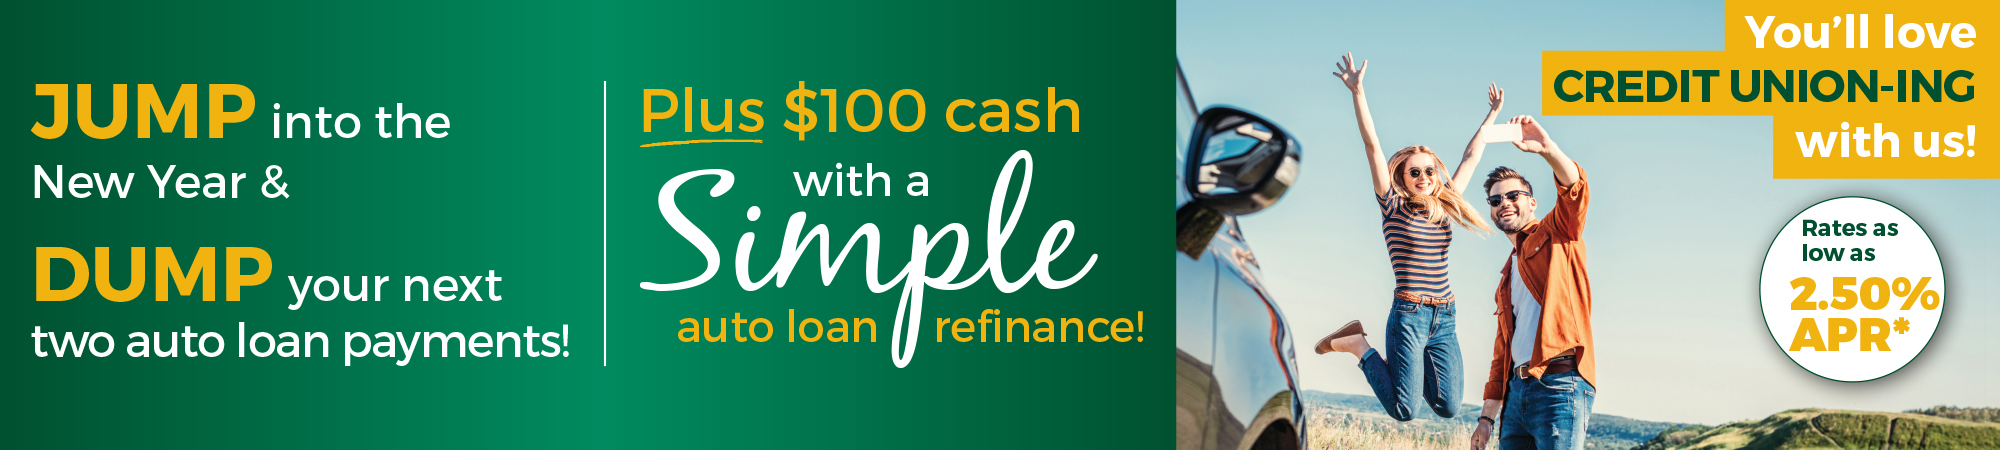 new year jump & dump auto loan